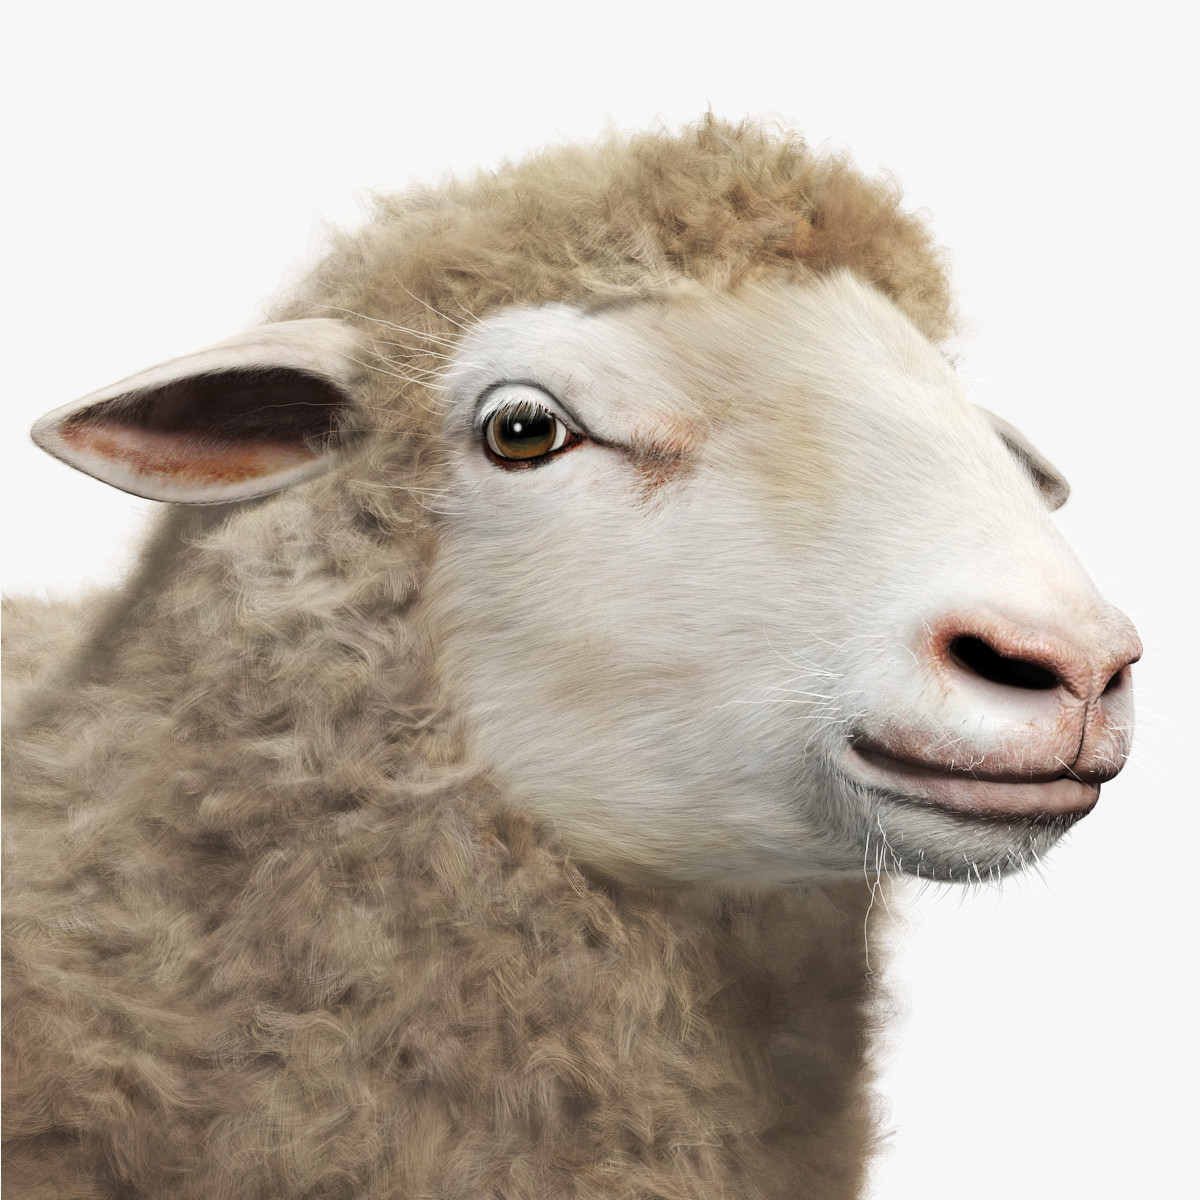 3DS-Sheep-Adult-Preview-04-Turbosquid-No-Branding.jpg